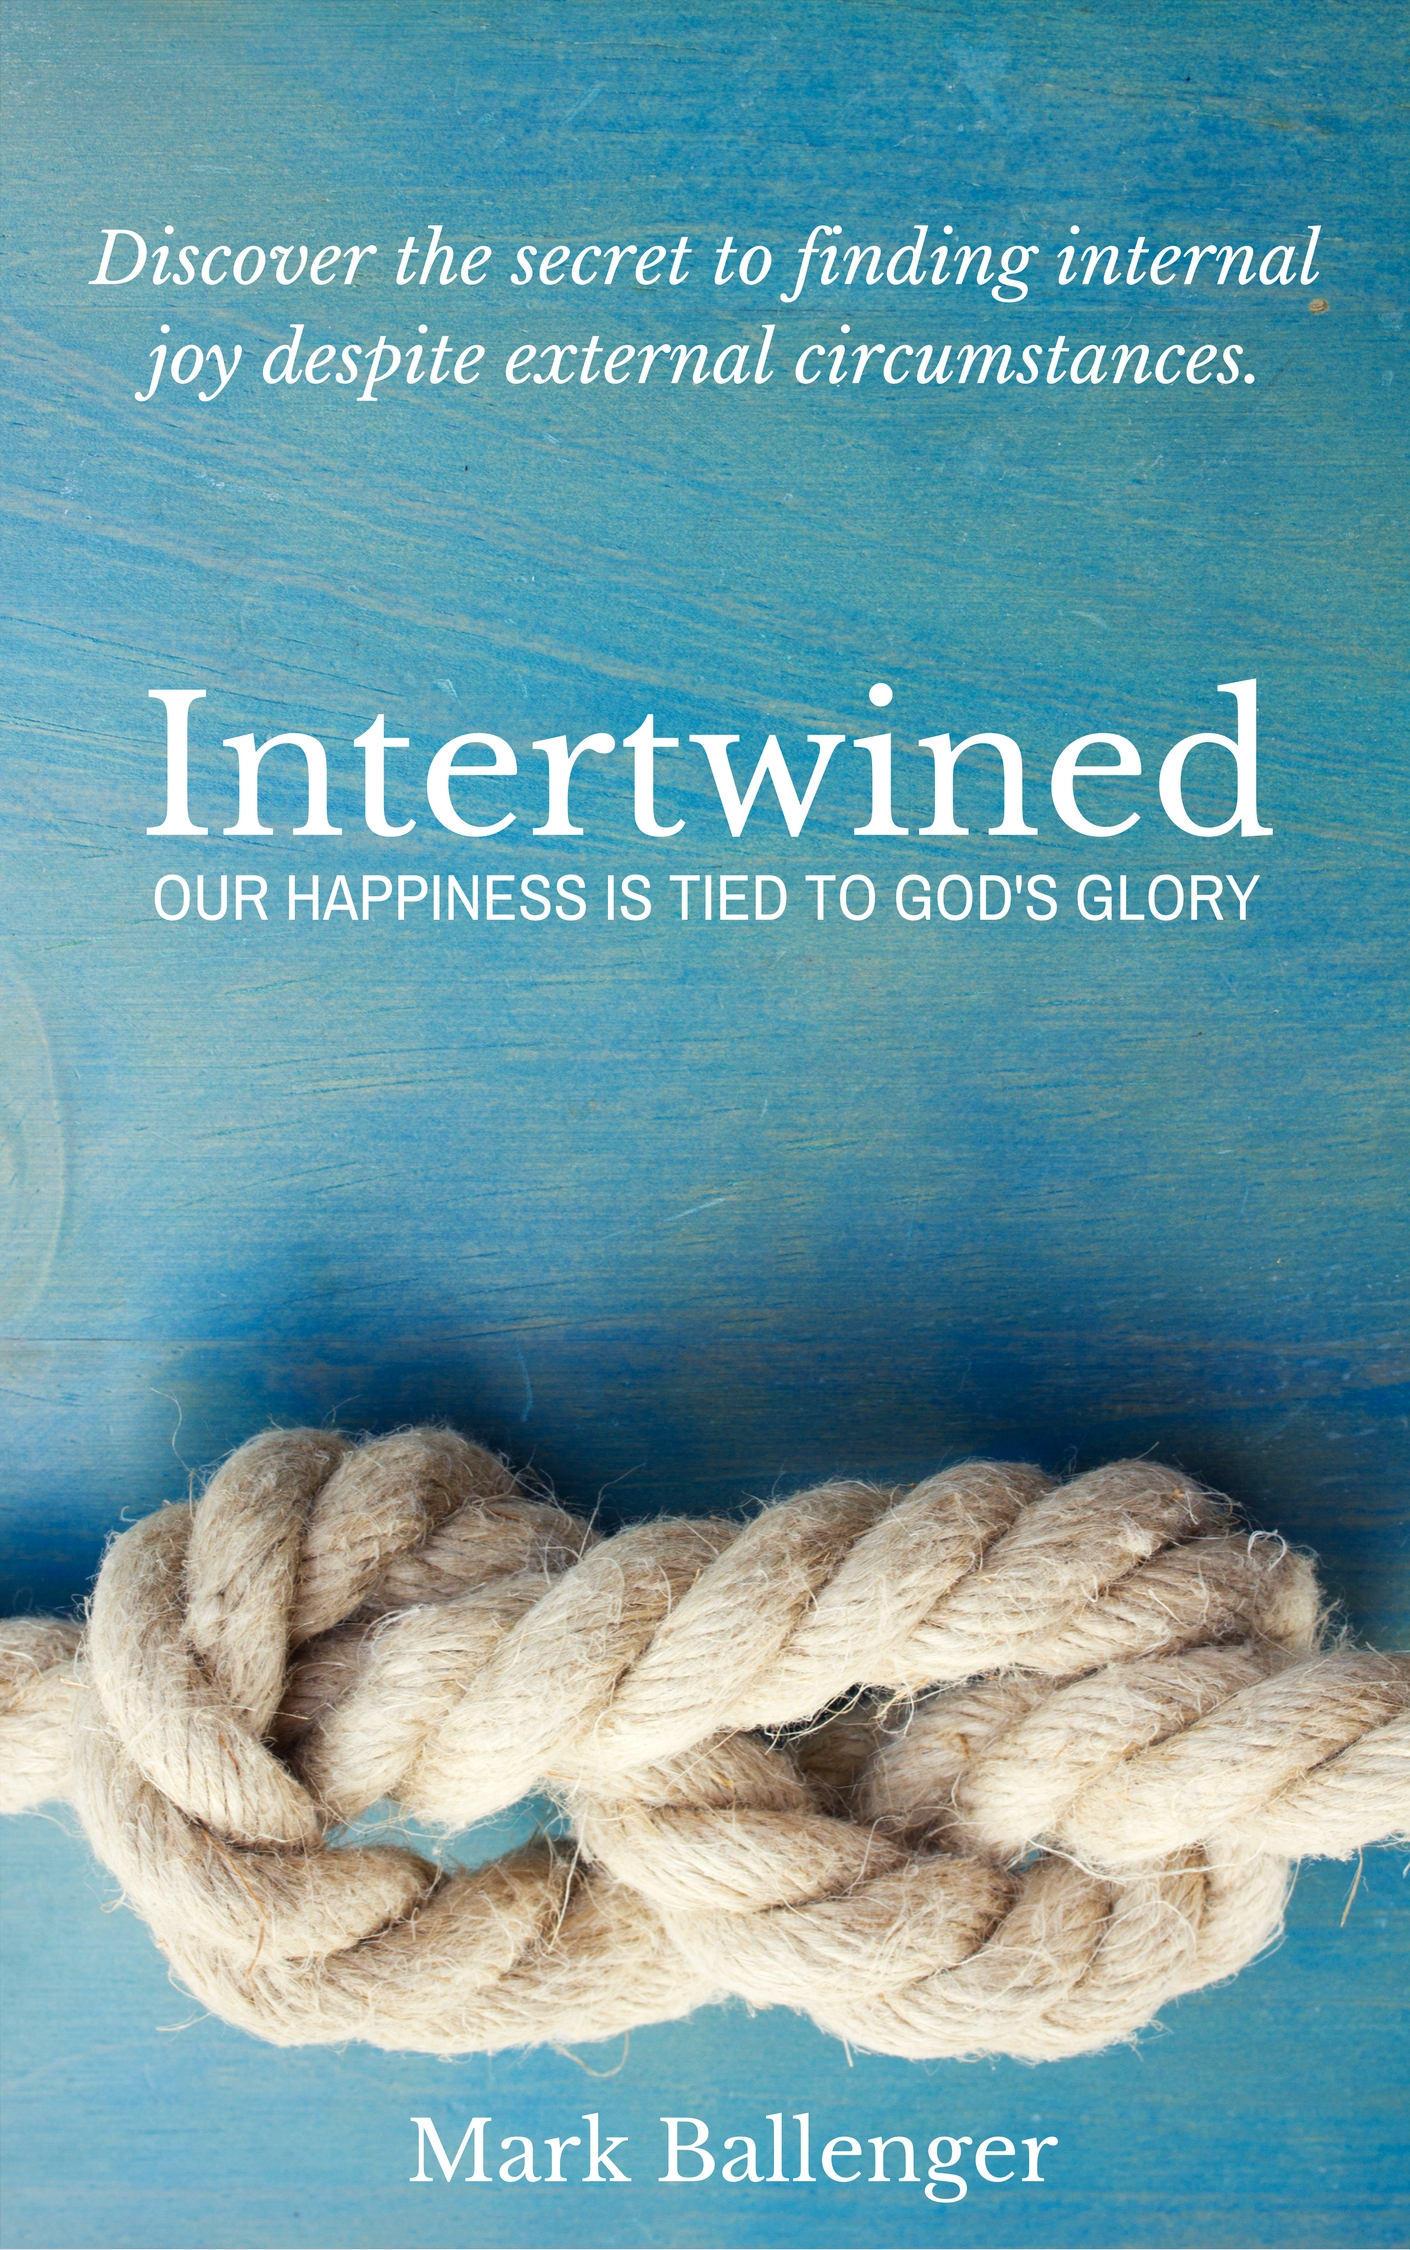 Intertwined by Mark Ballenger